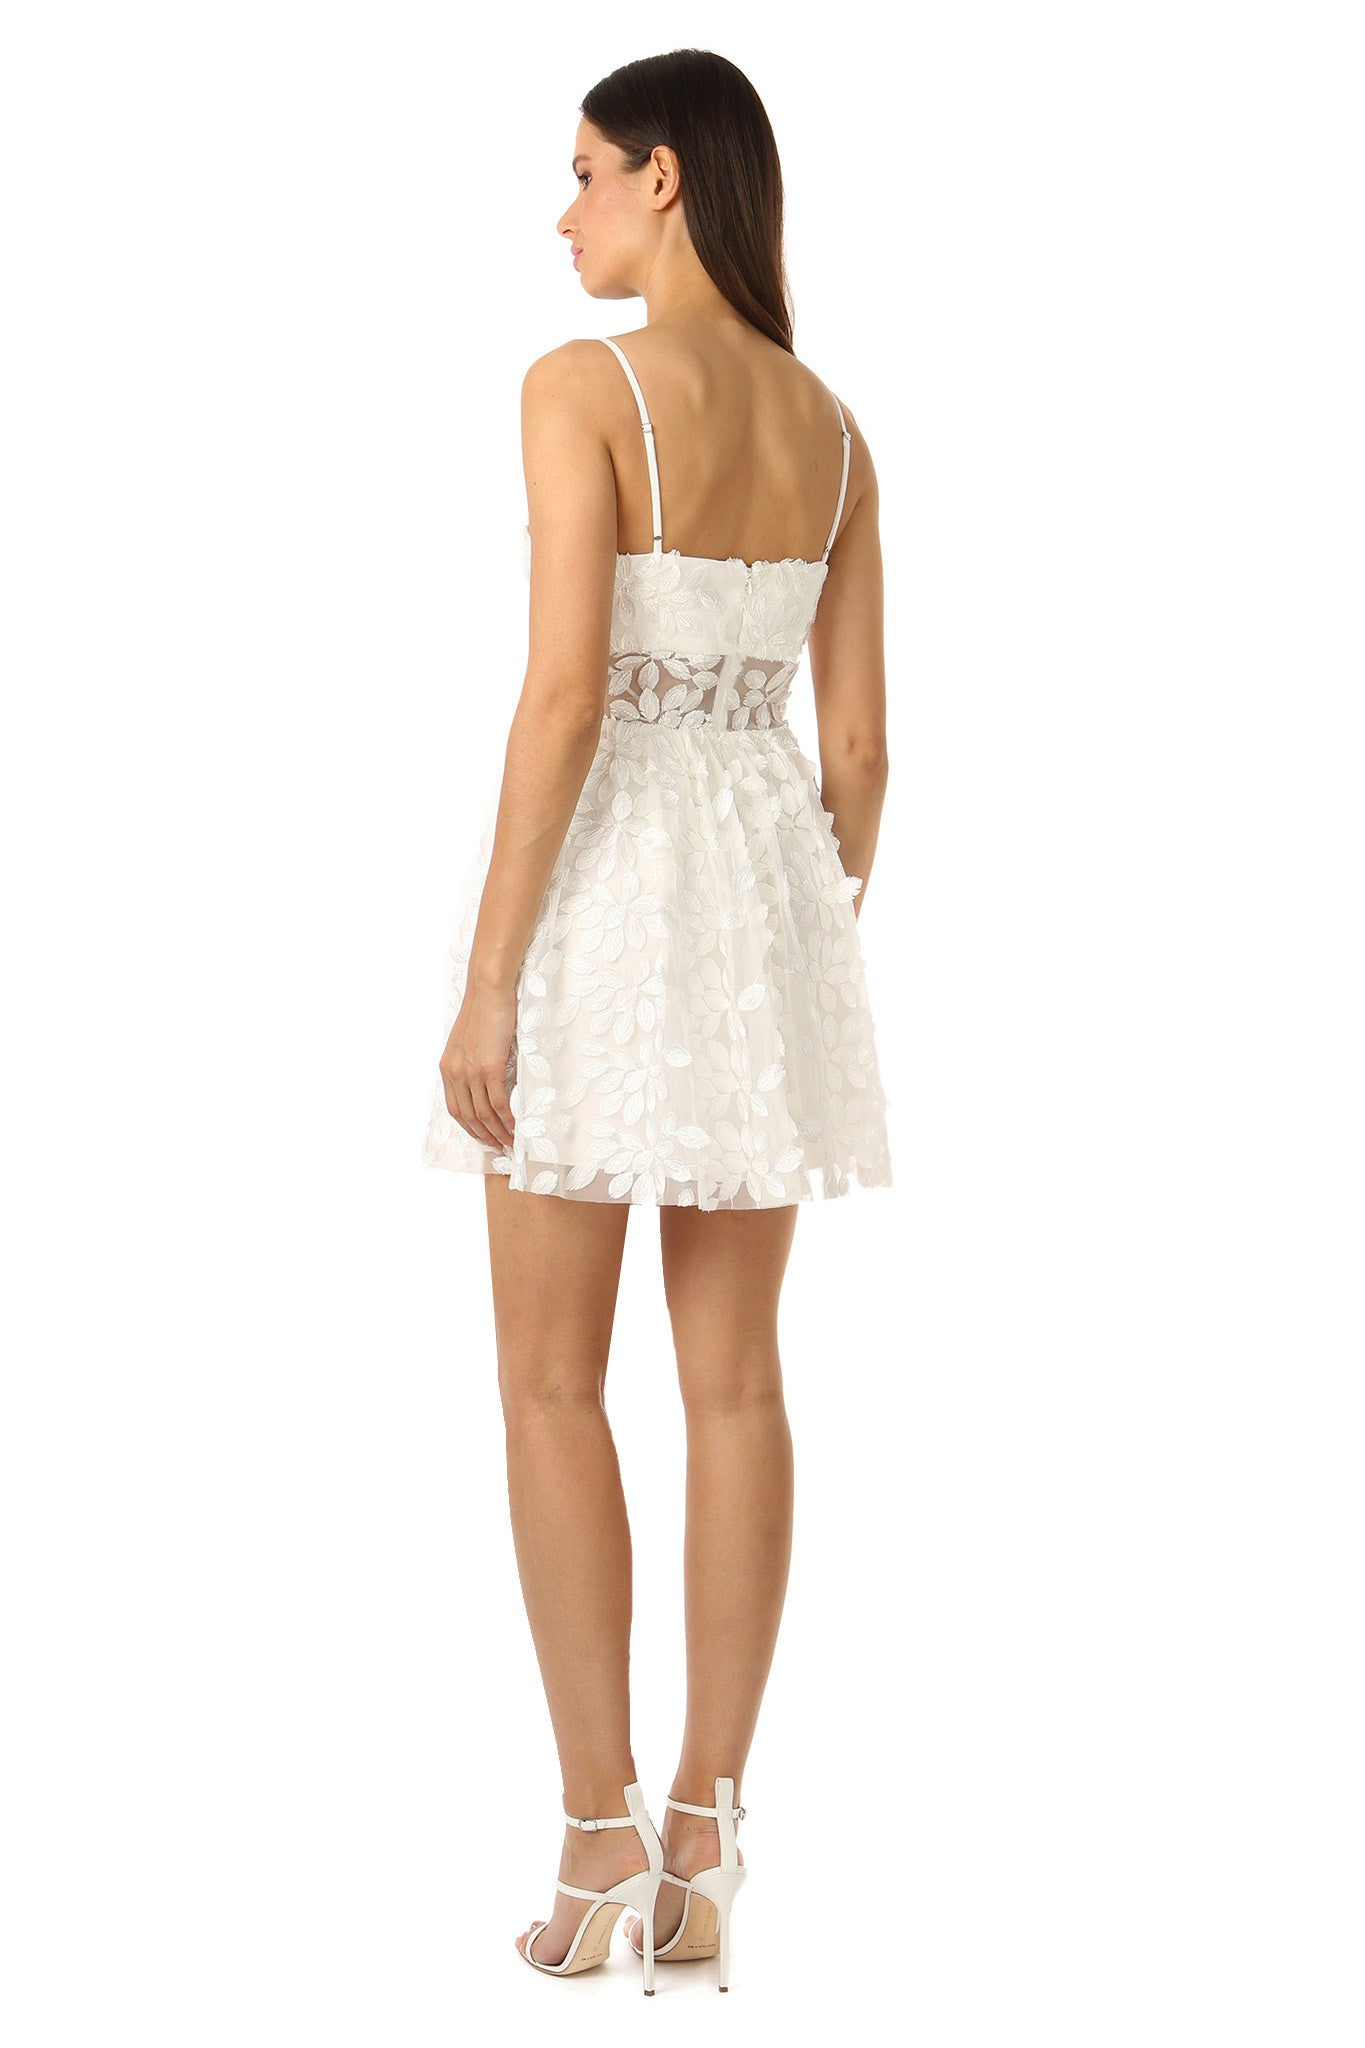 Jay Godfrey White Floral Embroidery Dress - Back View